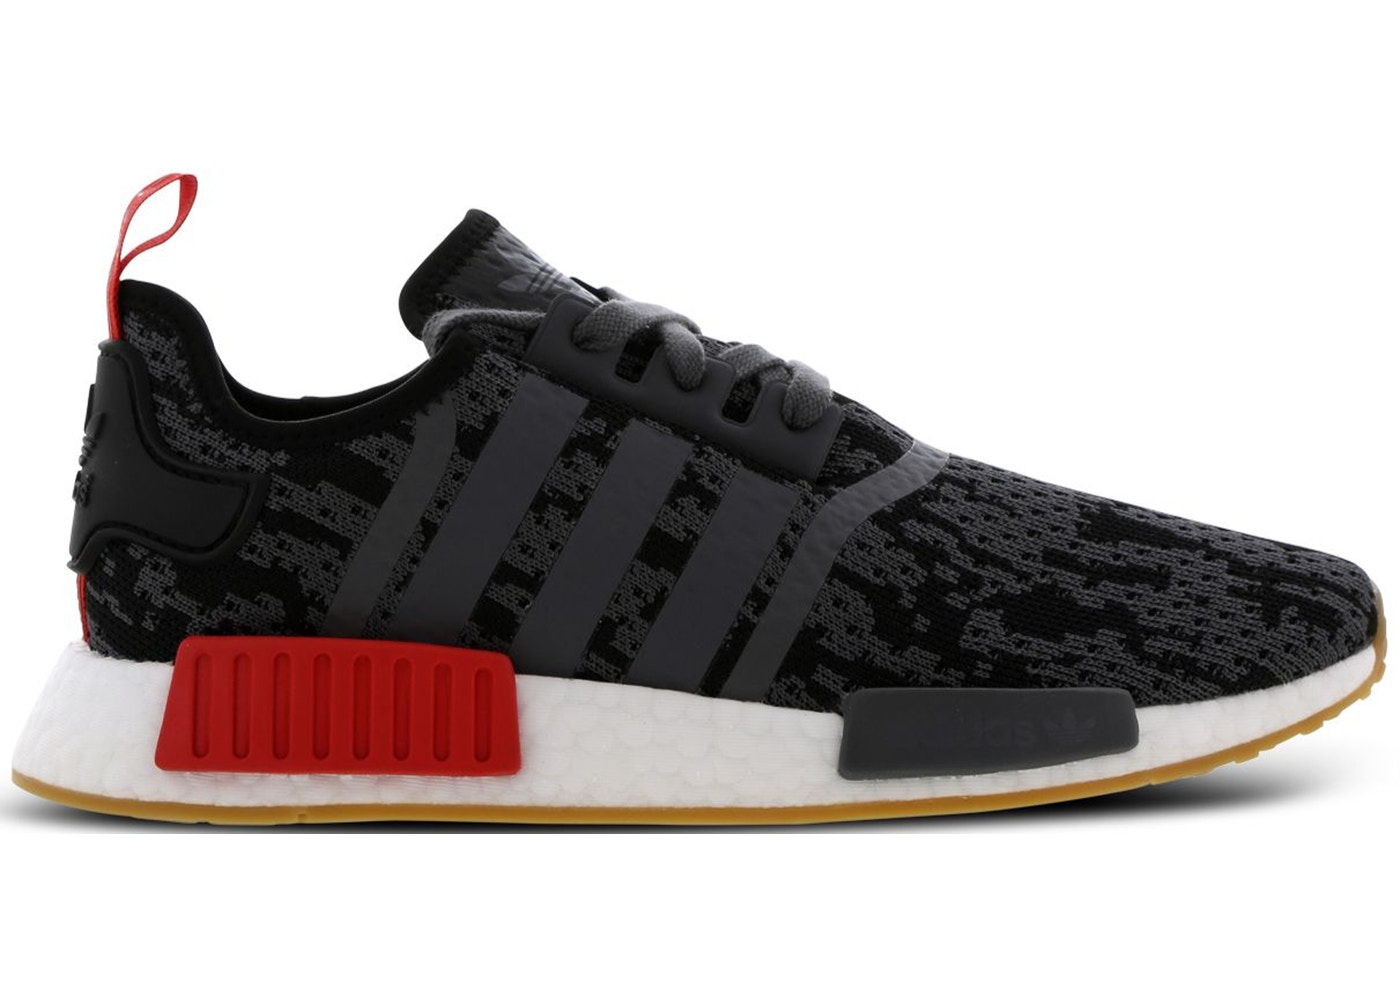 e9dc245a3bd61 adidas NMD R1 Black Grey Red Gum (Foot Locker Exclusive) - CG6666